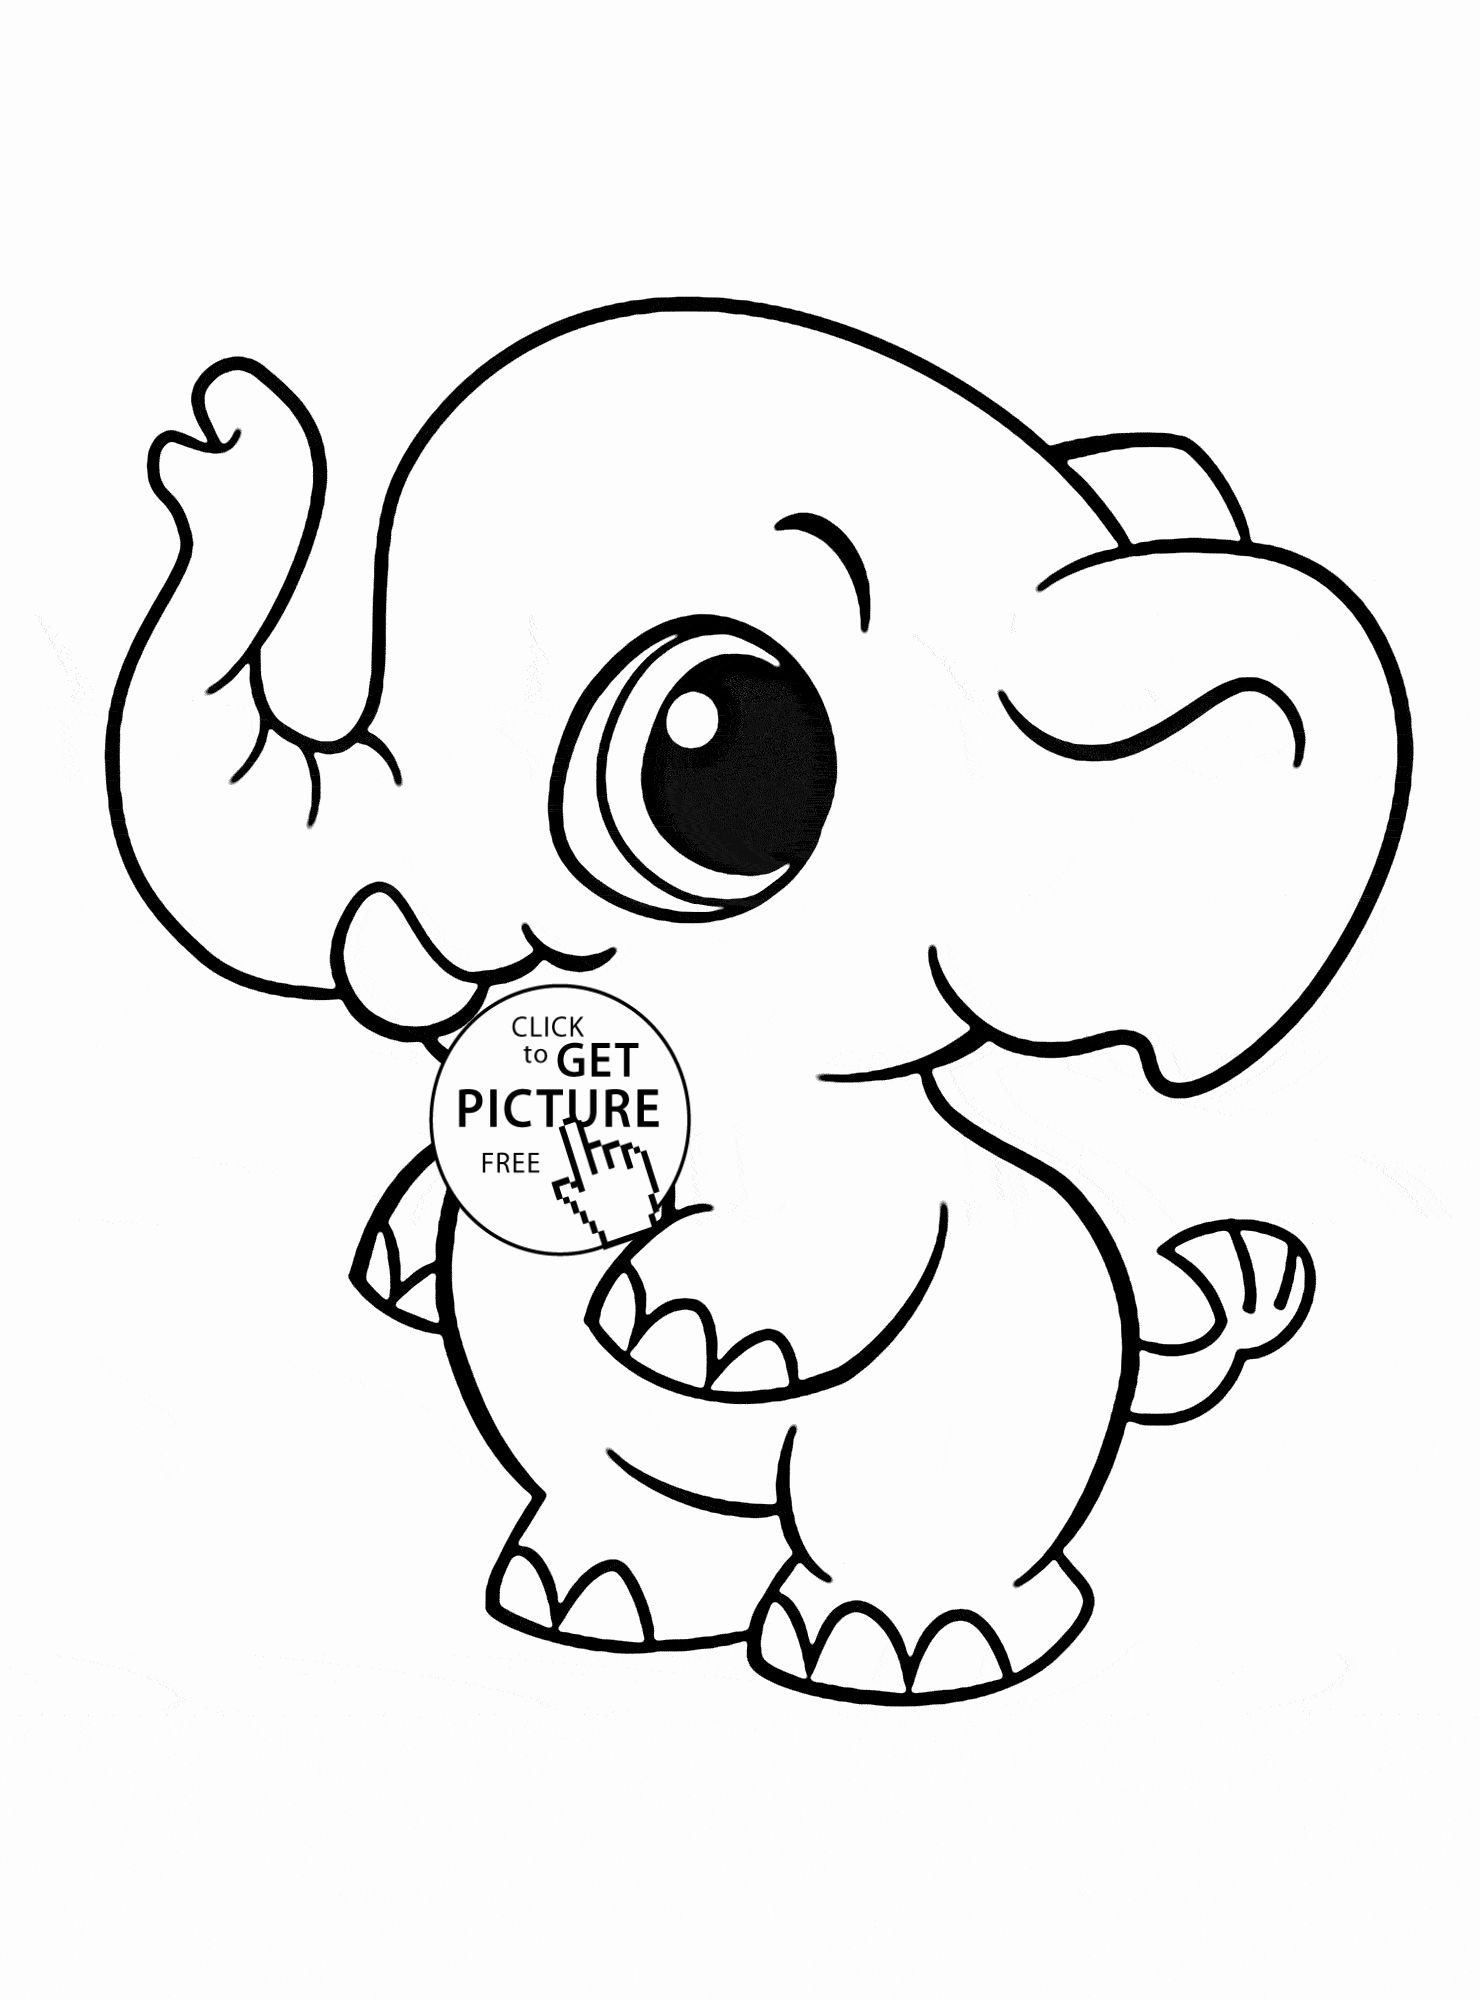 Dogs Coloring Pages Printable In 2020 Zoo Animal Coloring Pages